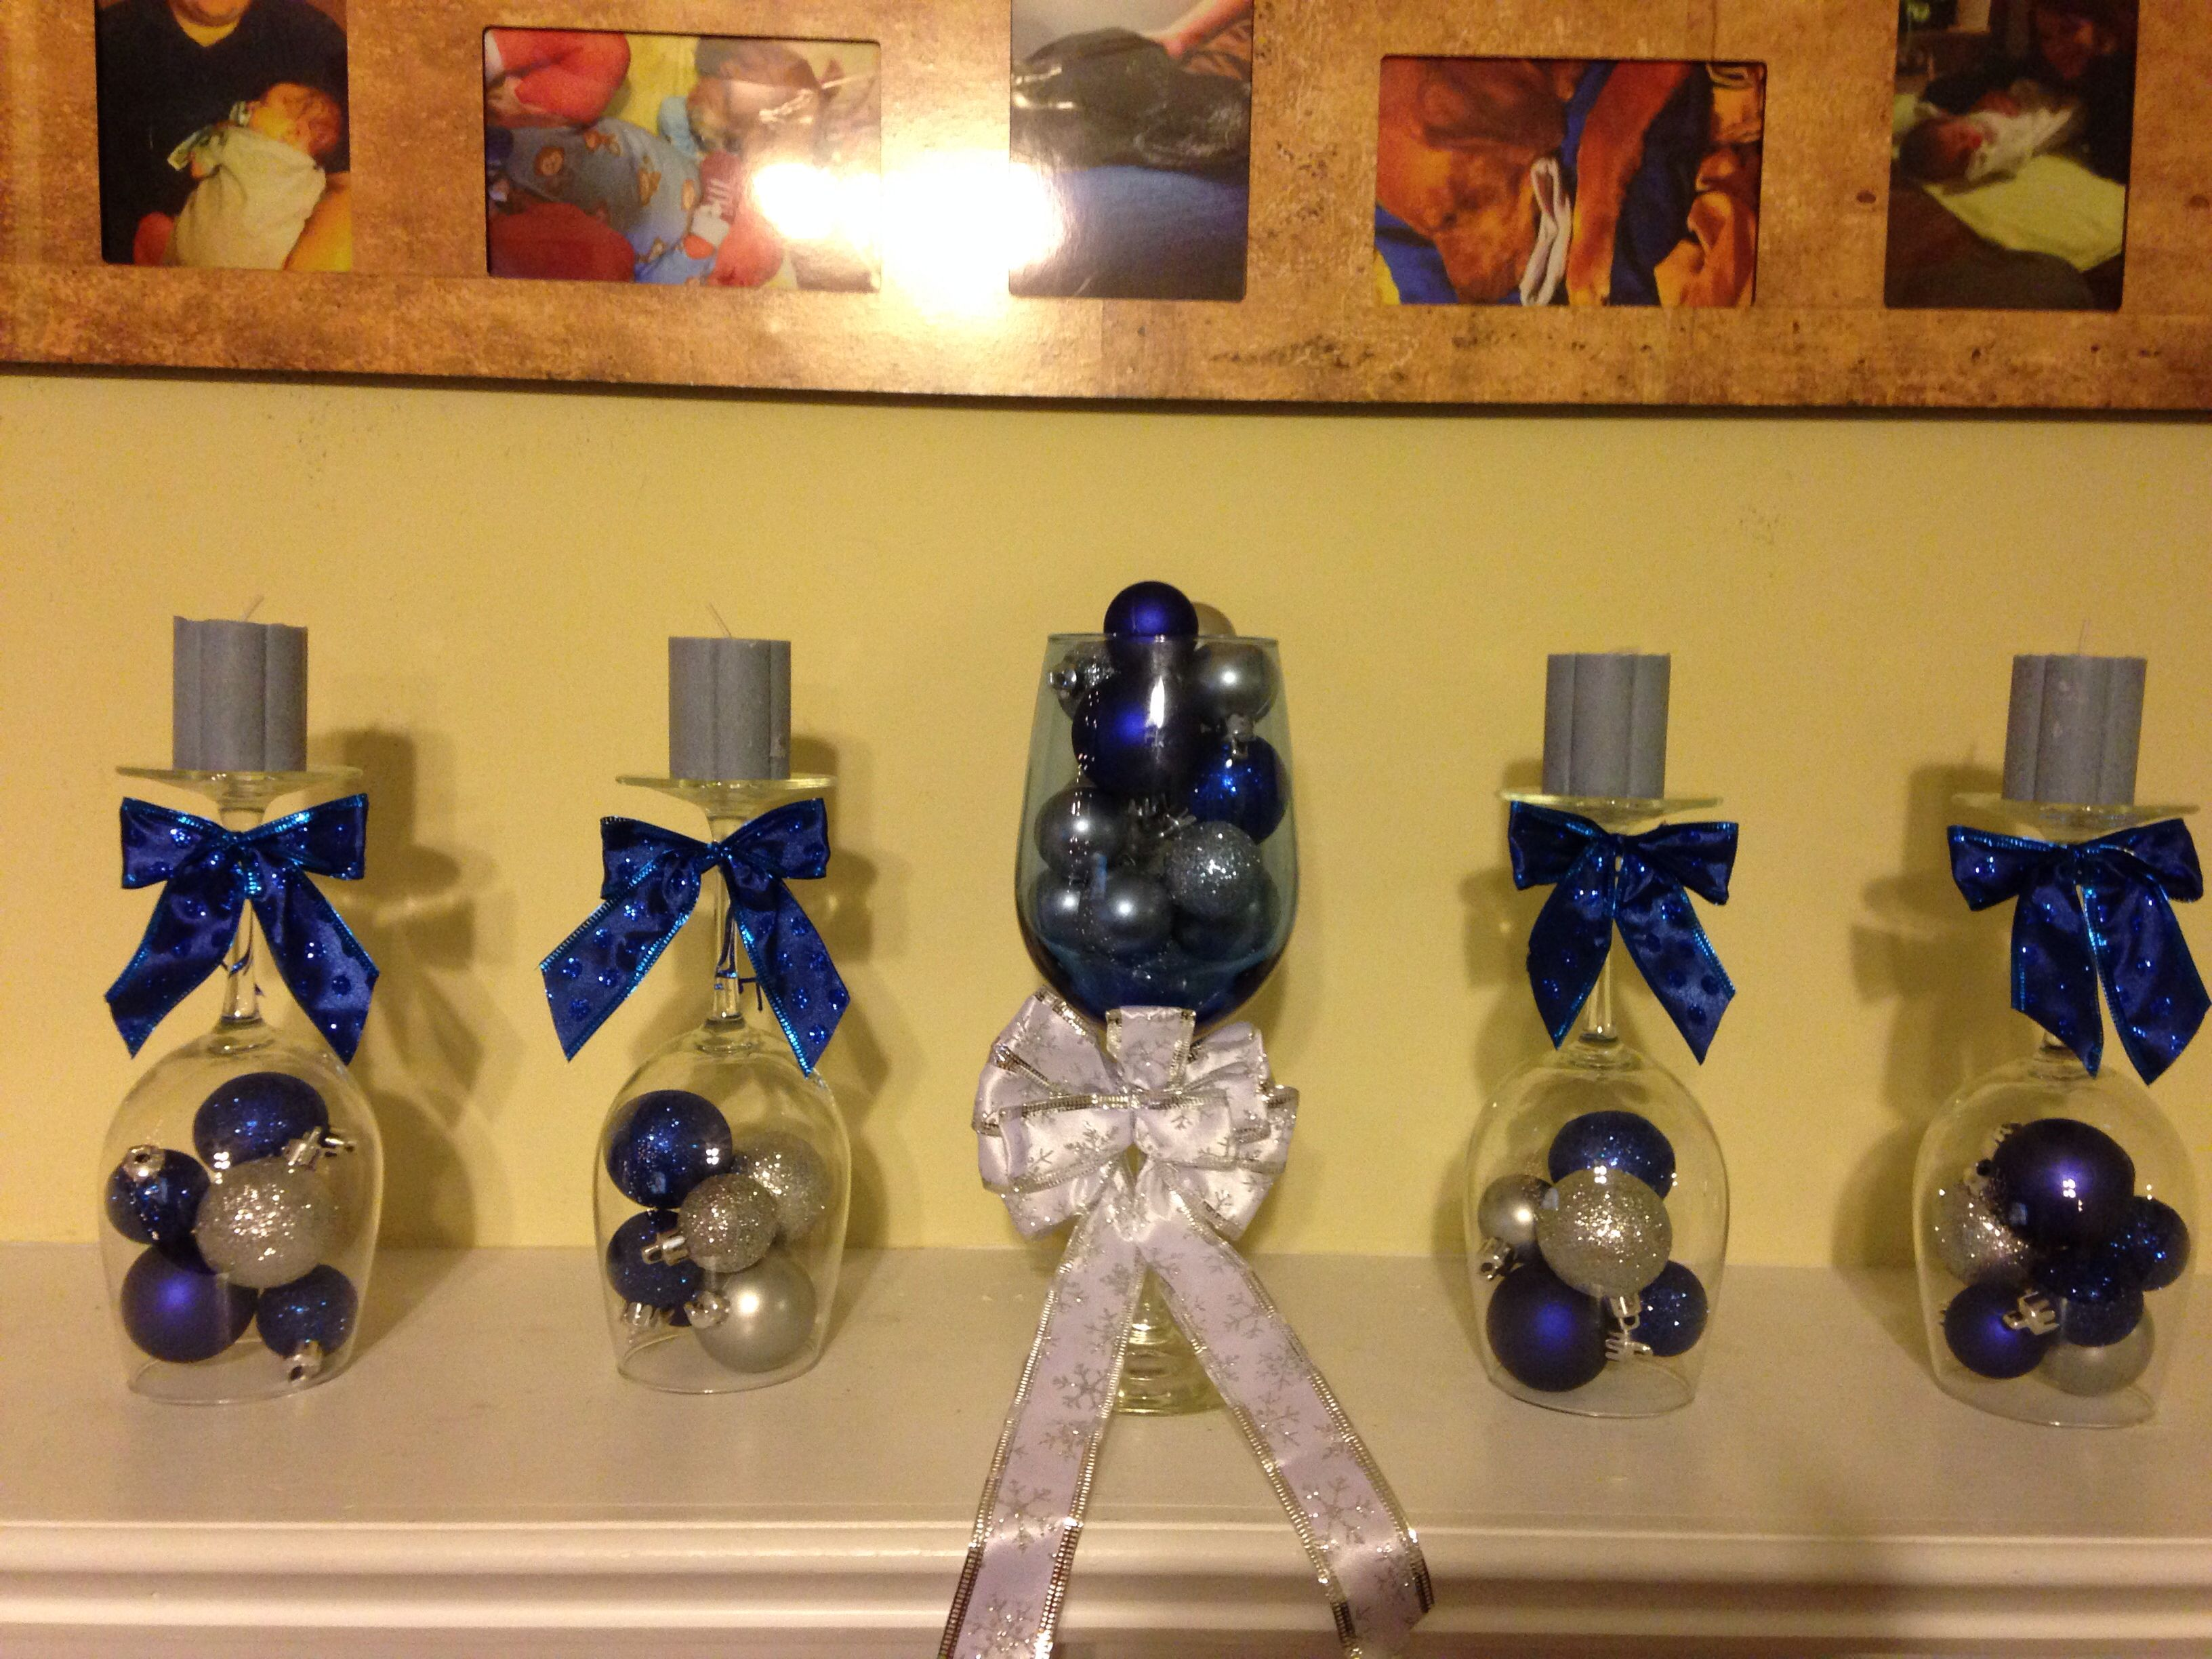 Mantle decoration for Christmas. Wine glasses, mini ornaments, candles and bows.